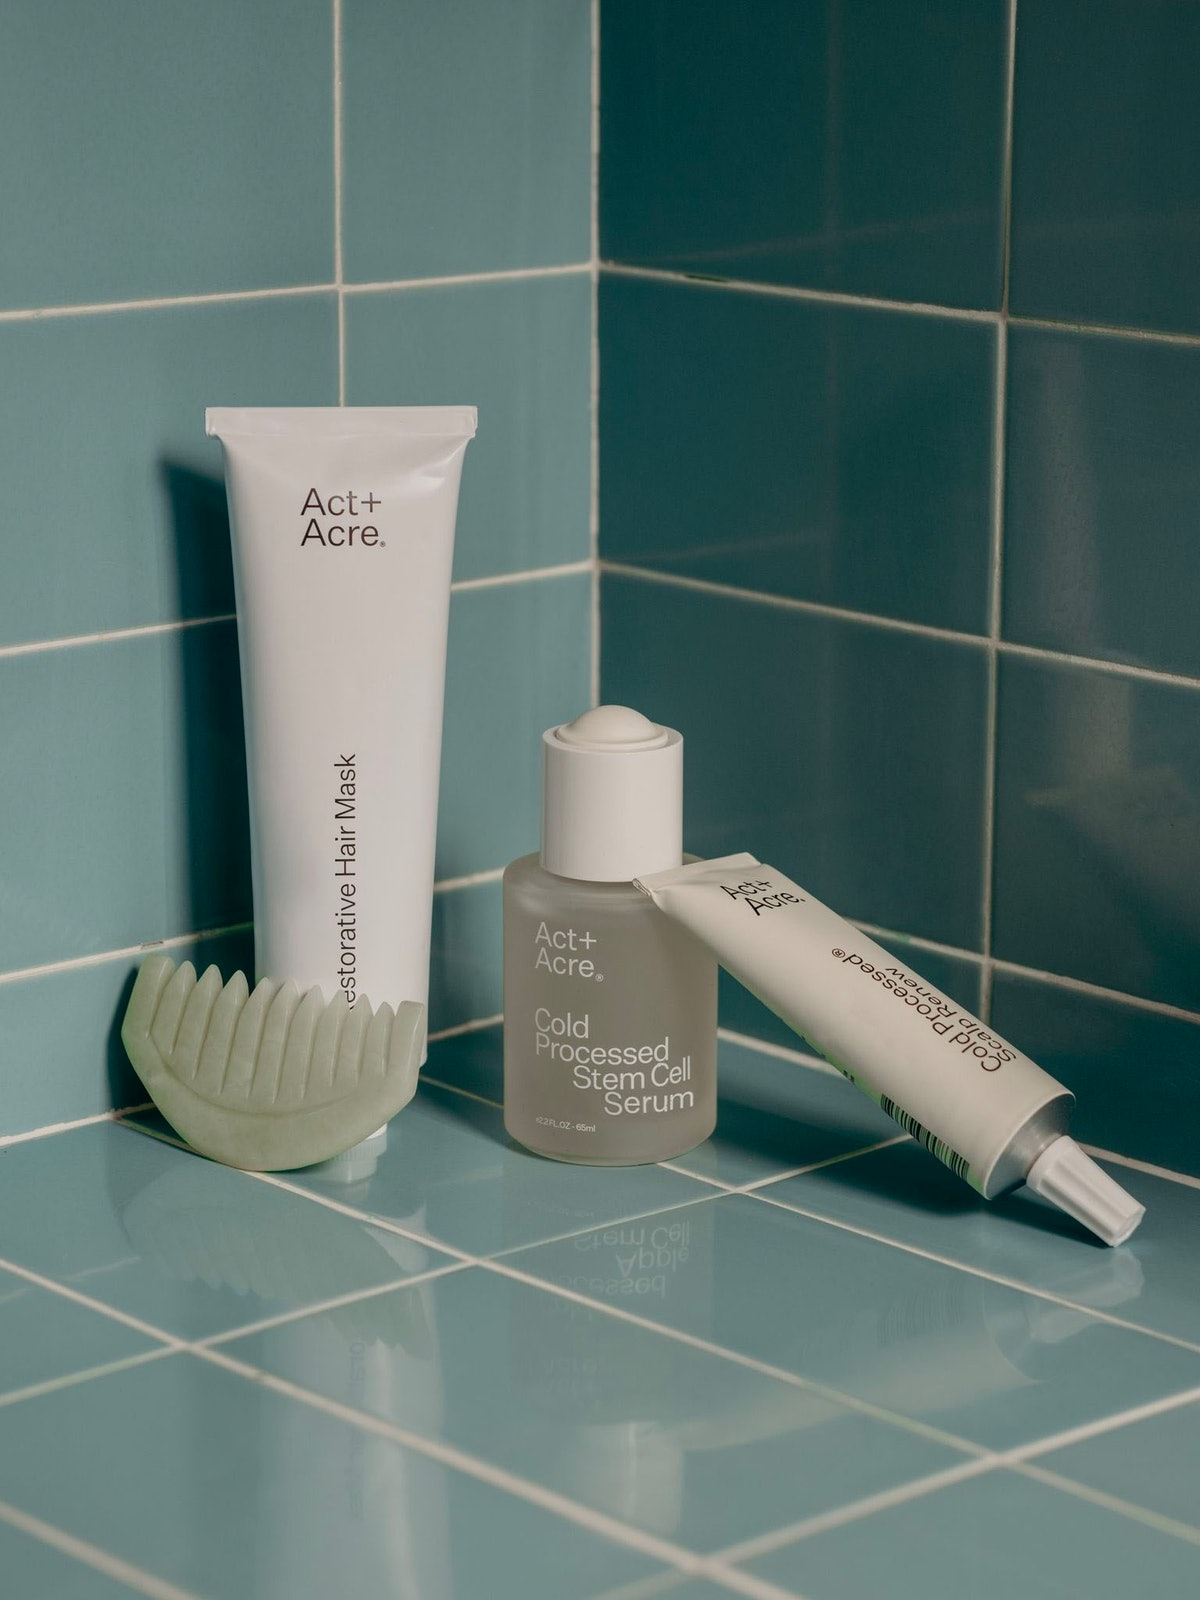 A still life product photo of Acte+Acre's Cold Processed Stem Stell Serum for hair and scalp alongside two other Act+Acre products